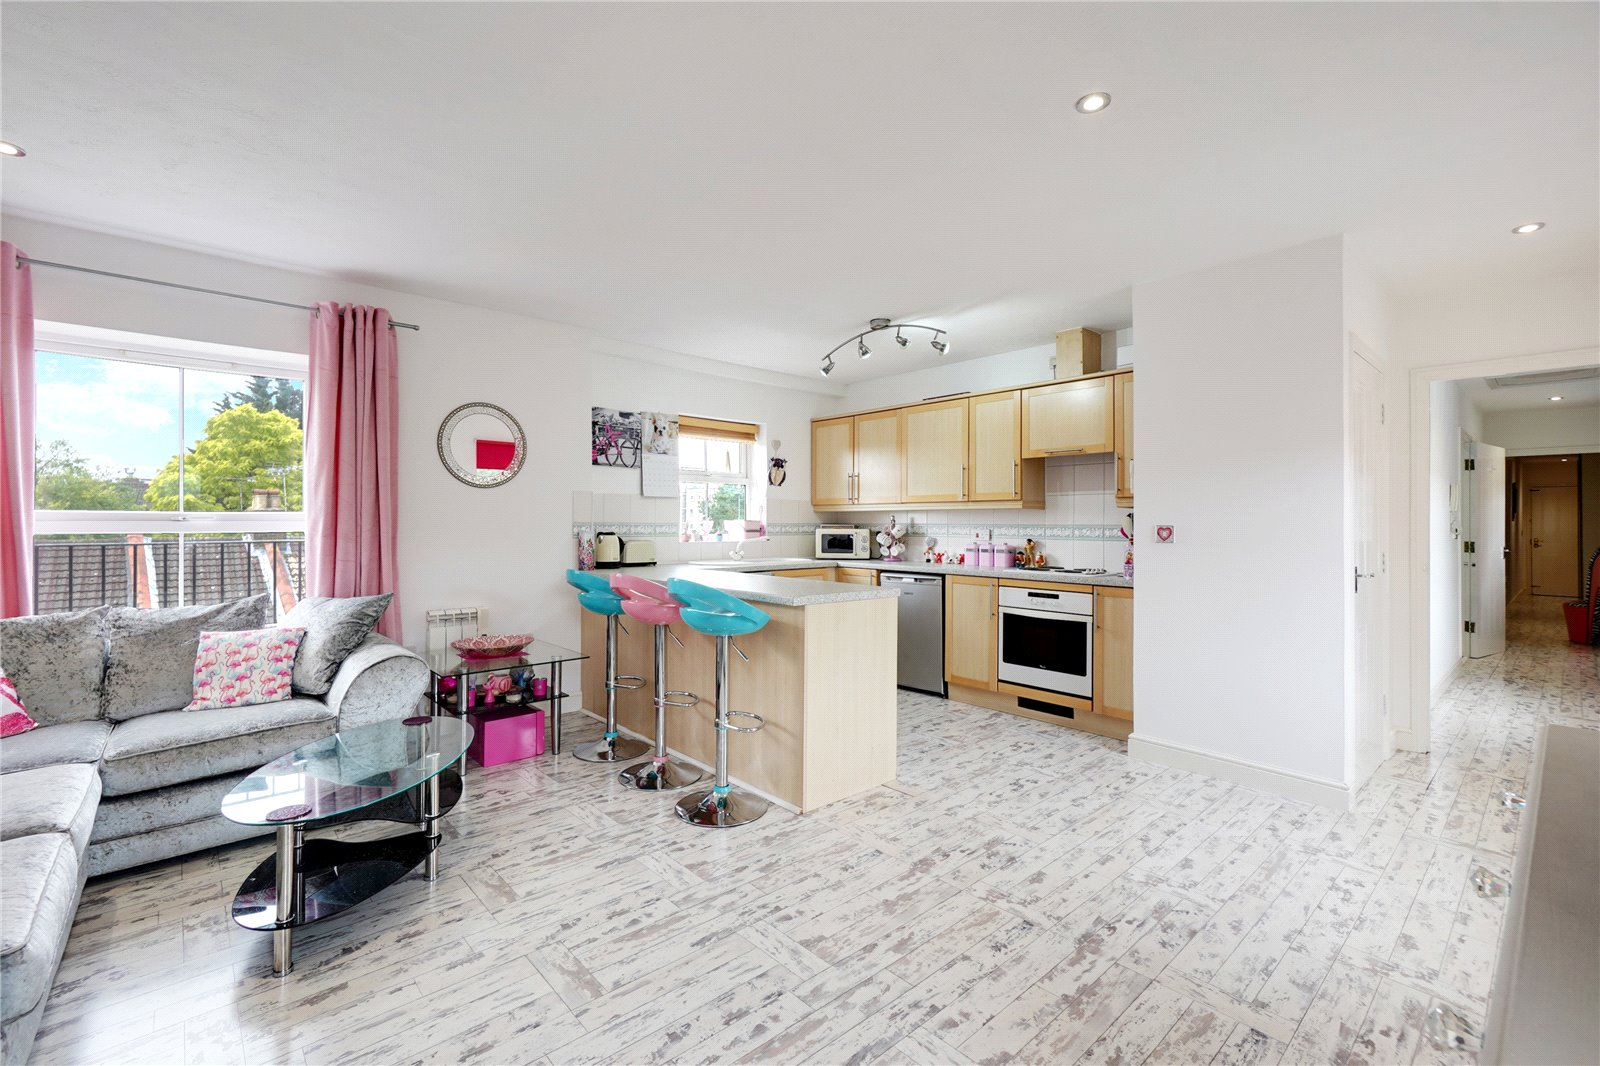 1 bed apartment for sale in Old School Place, Maidstone, ME14